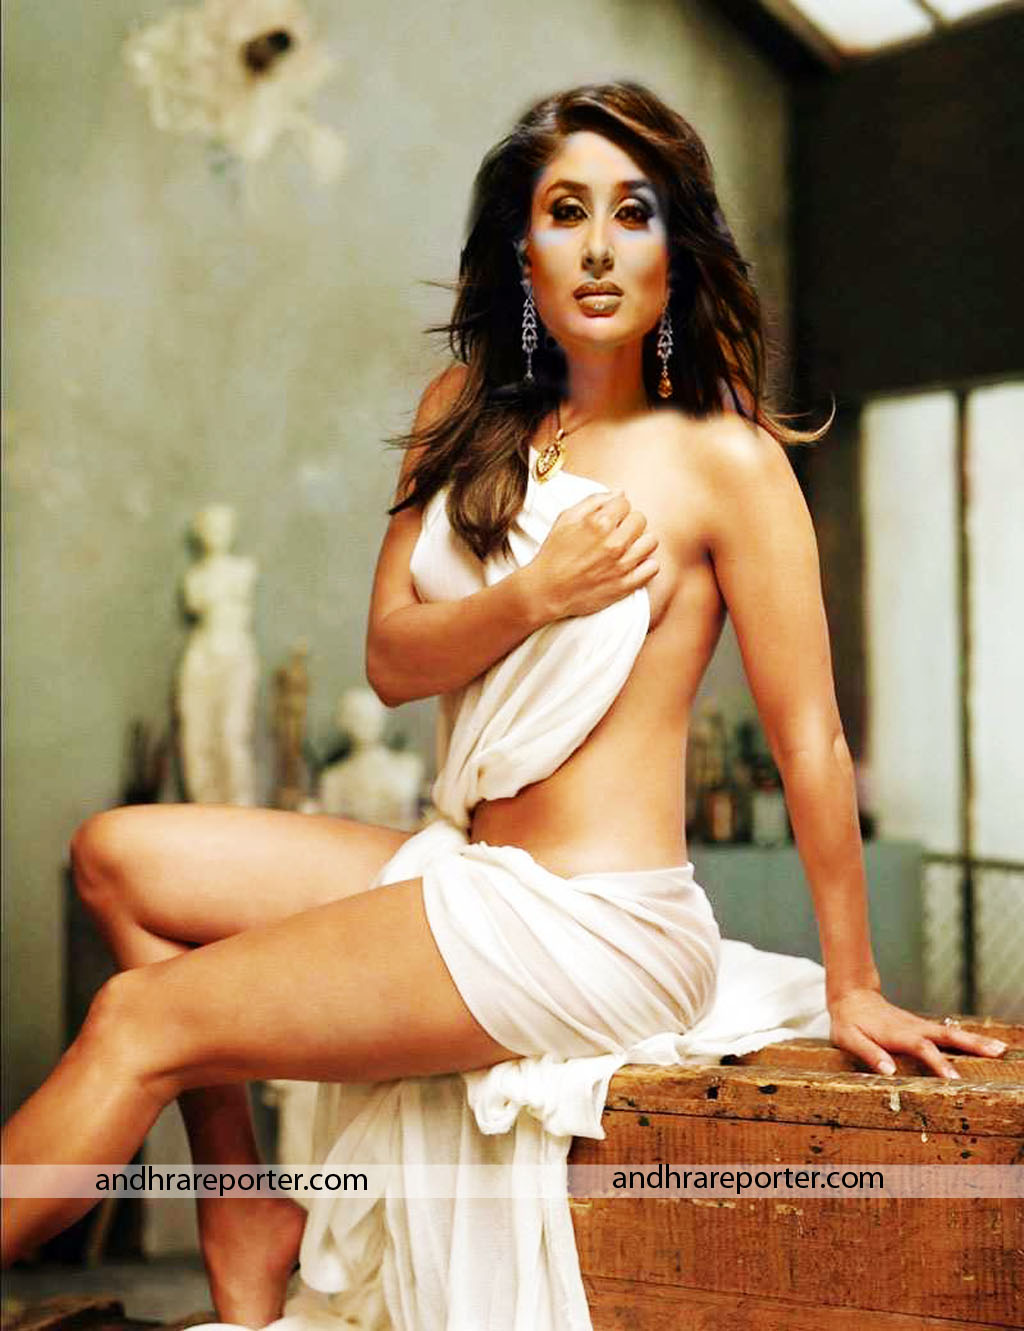 Kareena Kapoor Hot Sexy Wallpapers